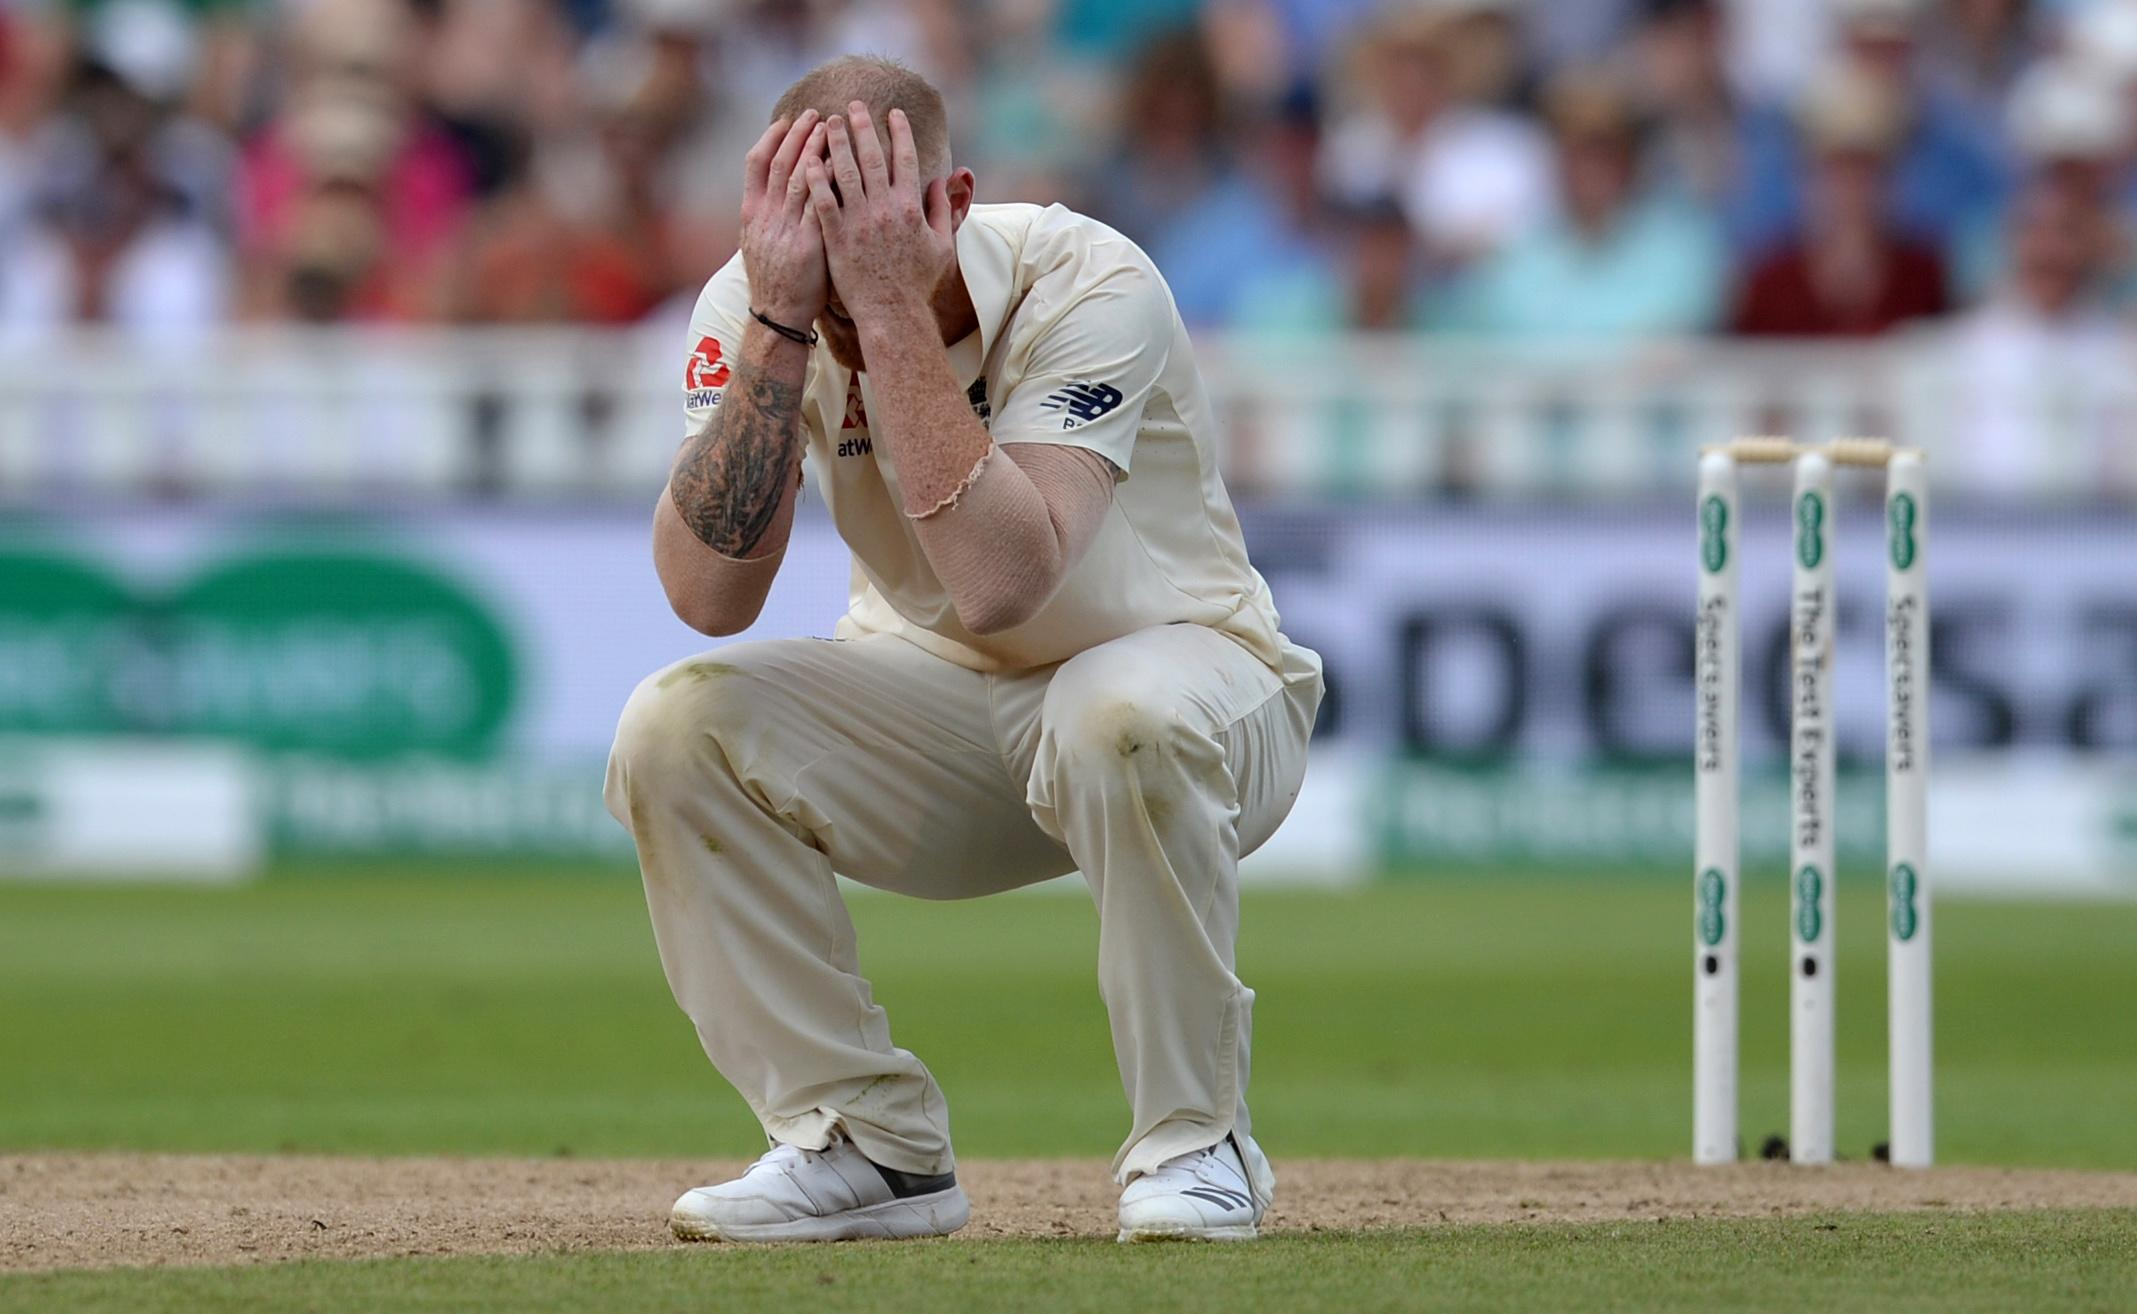 Ben Stokes cannot believe another chance has gone begging on a thrilling day of Test cricket